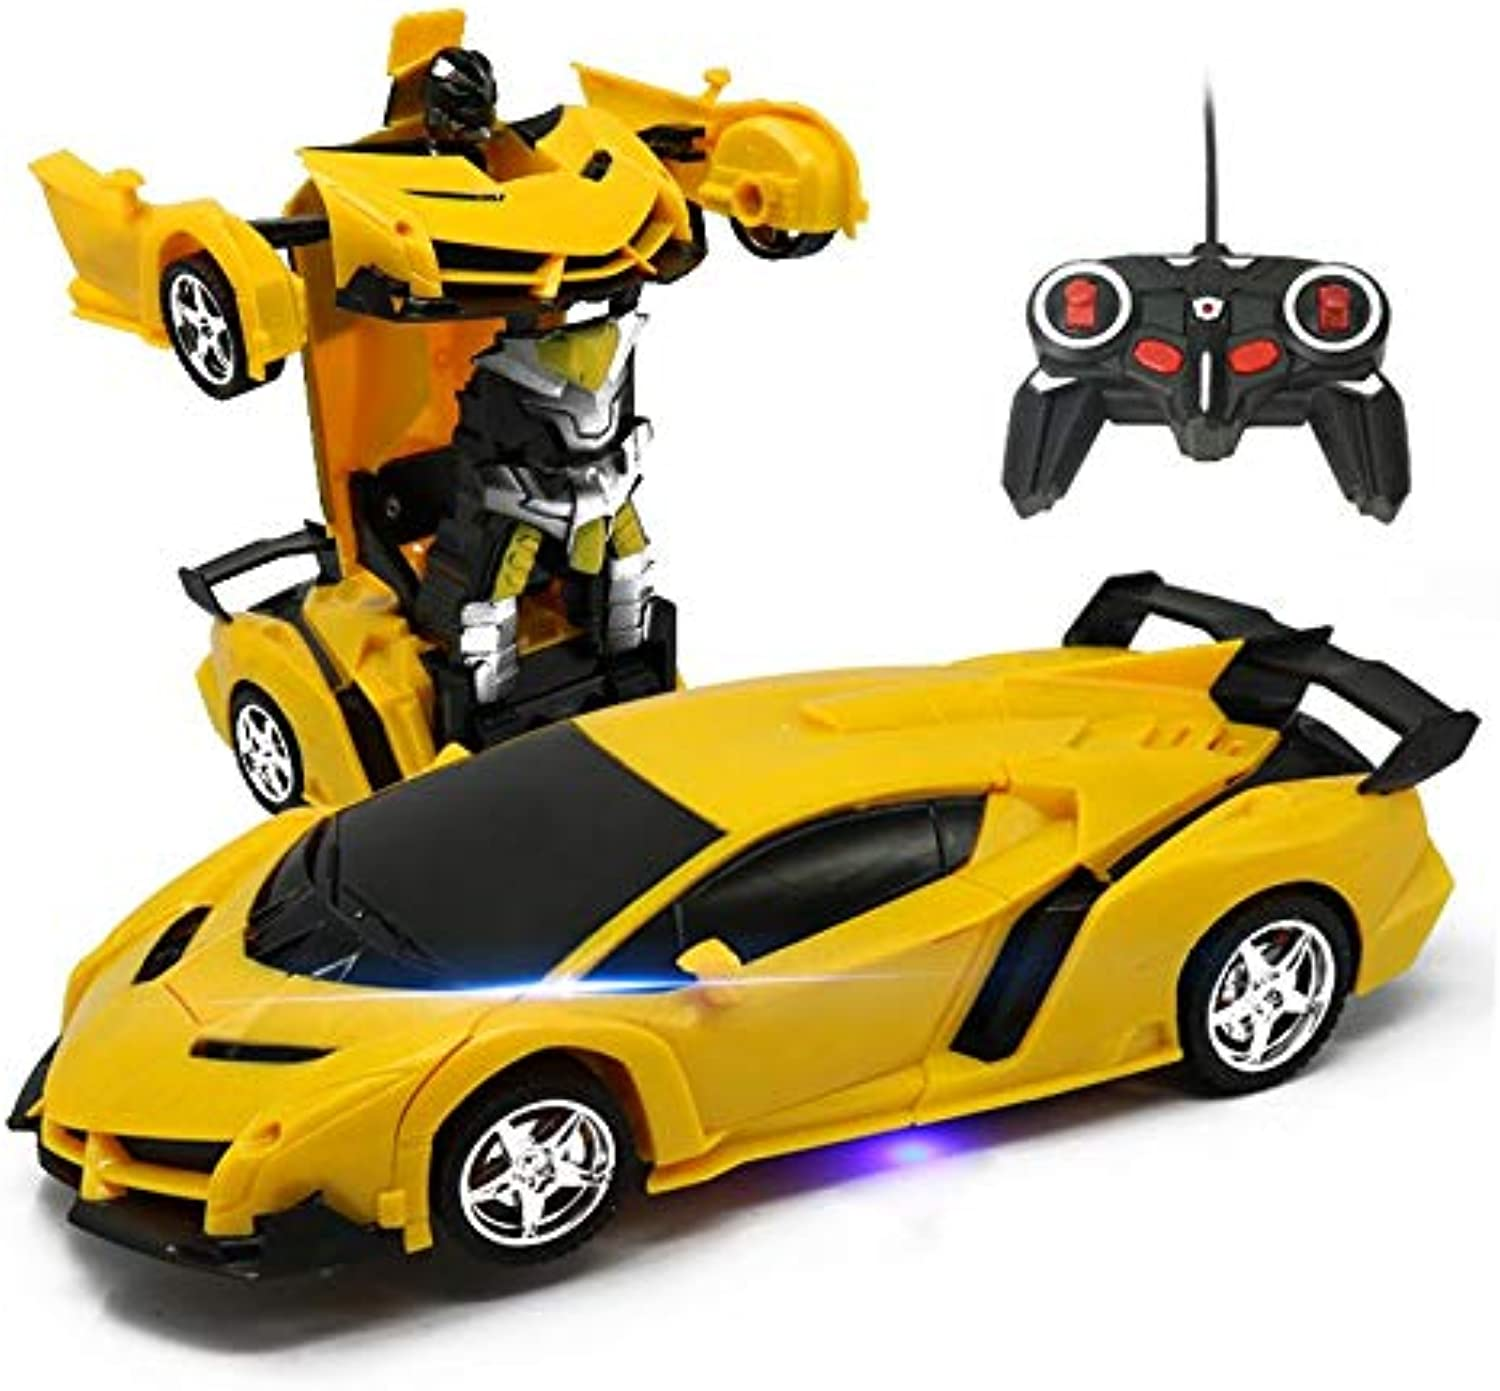 Generic Global Drone Rc Transformer 2 in 1 RC Car Driving Sports Cars Model RC Robots Models Radio-Controlled Toys for Boys Yellow